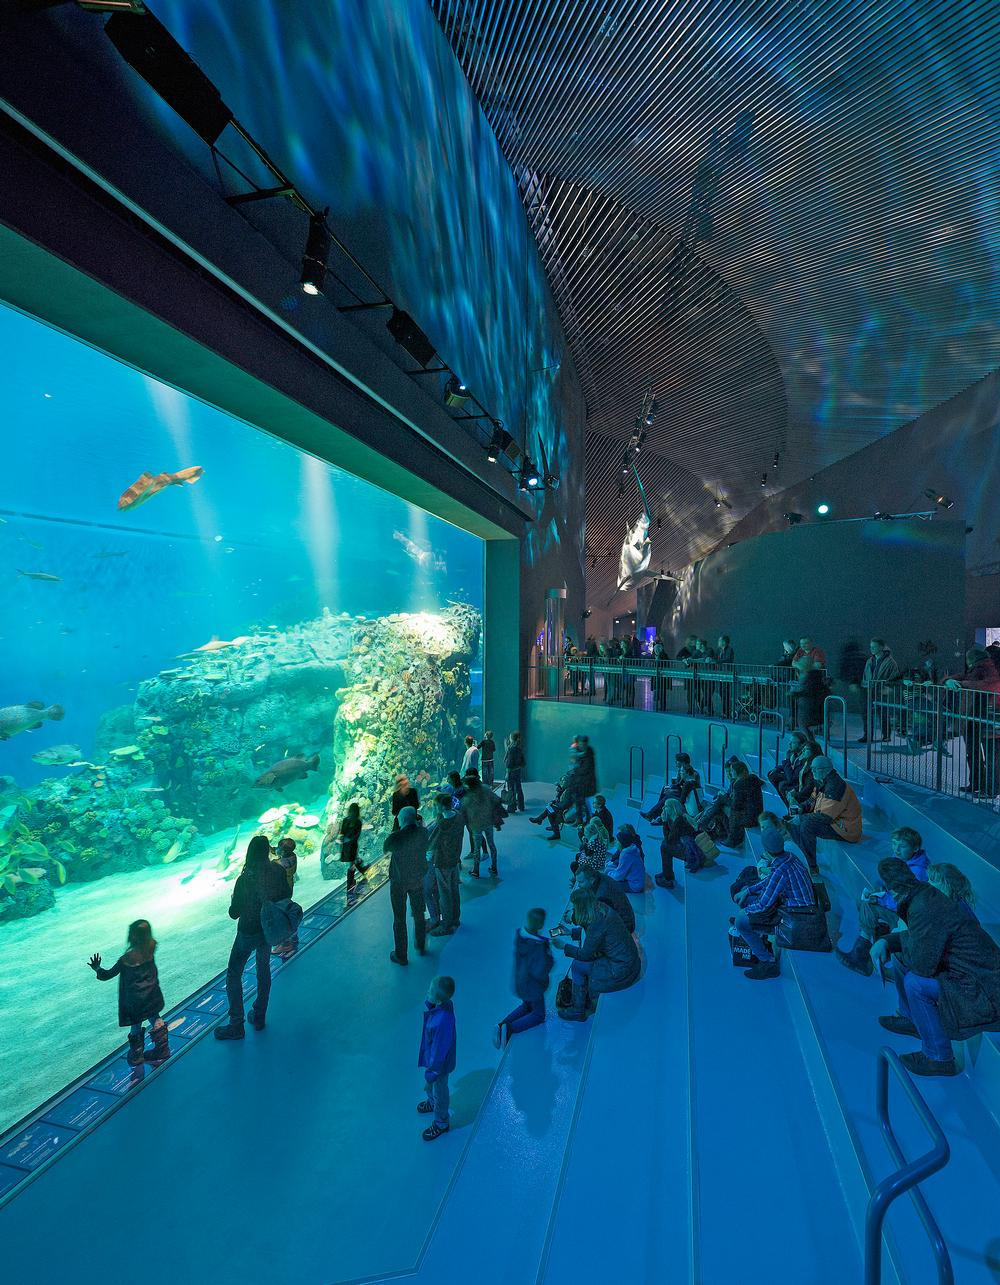 Denmark's Den Blå Planet, designed by 3XN, is the largest aquarium in Northern Europe / PHOTO: ADAM MØRK